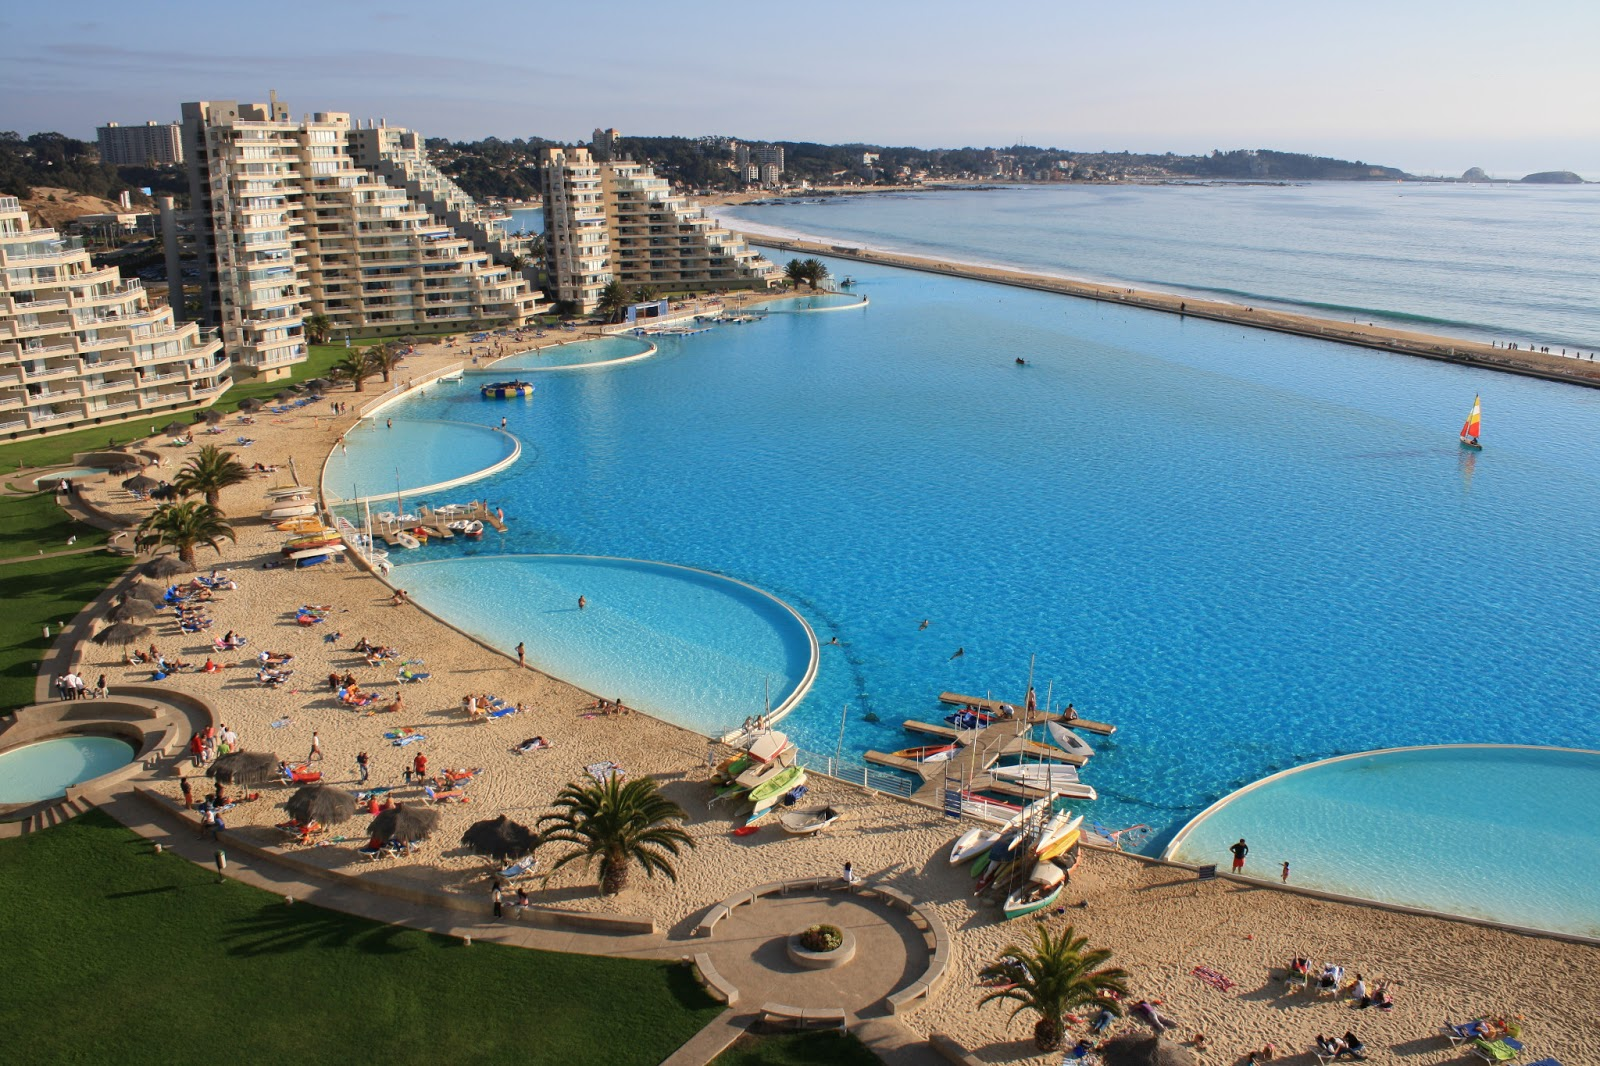 Luxury life design most beautiful pools around the world - Where is the worlds largest swimming pool ...